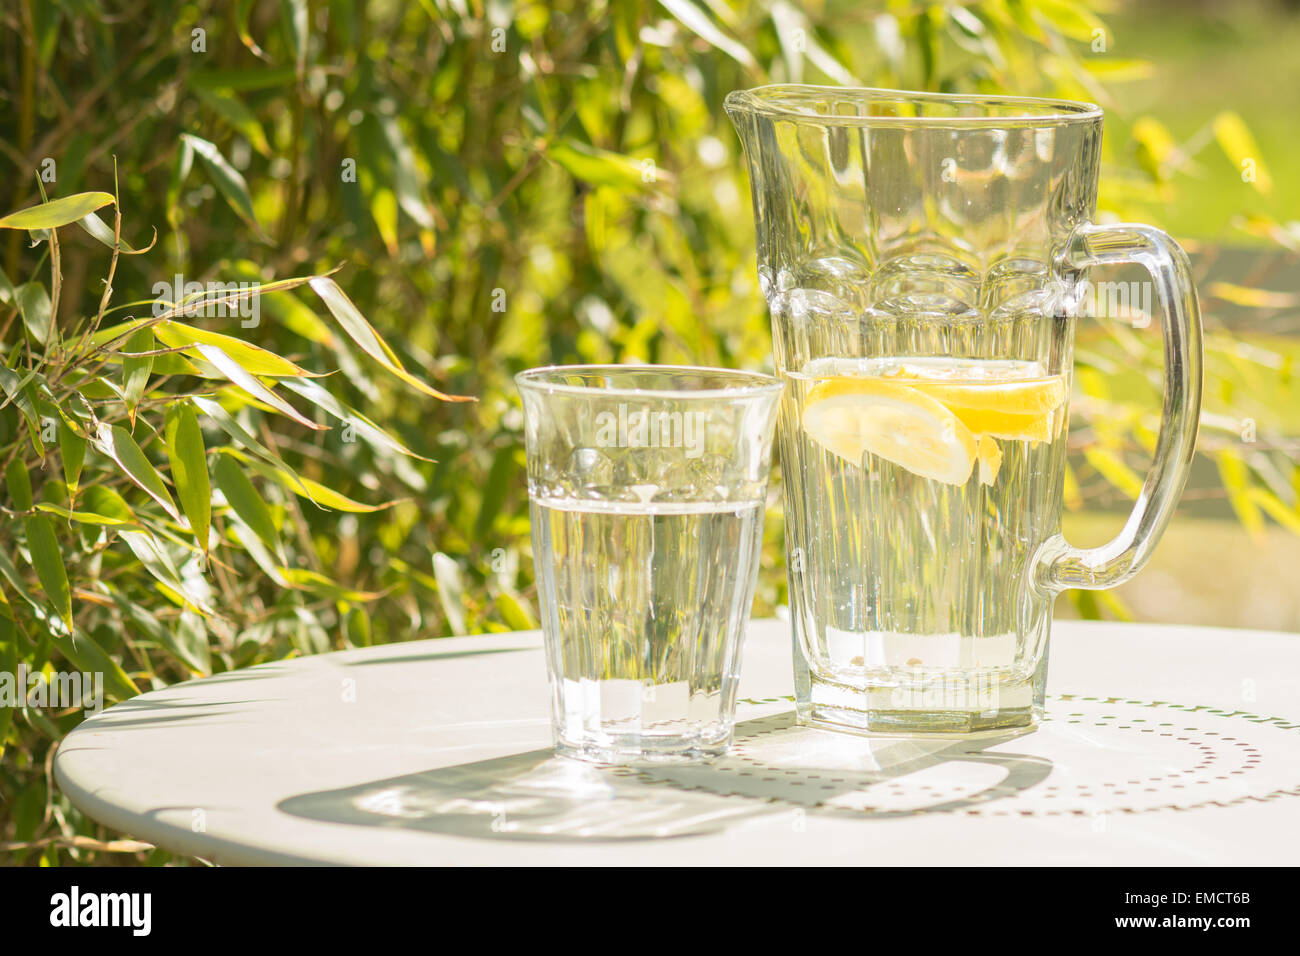 Summer - reflections of sun shining through jug and glass of lemon water on green bistro table on garden terrace - Stock Image